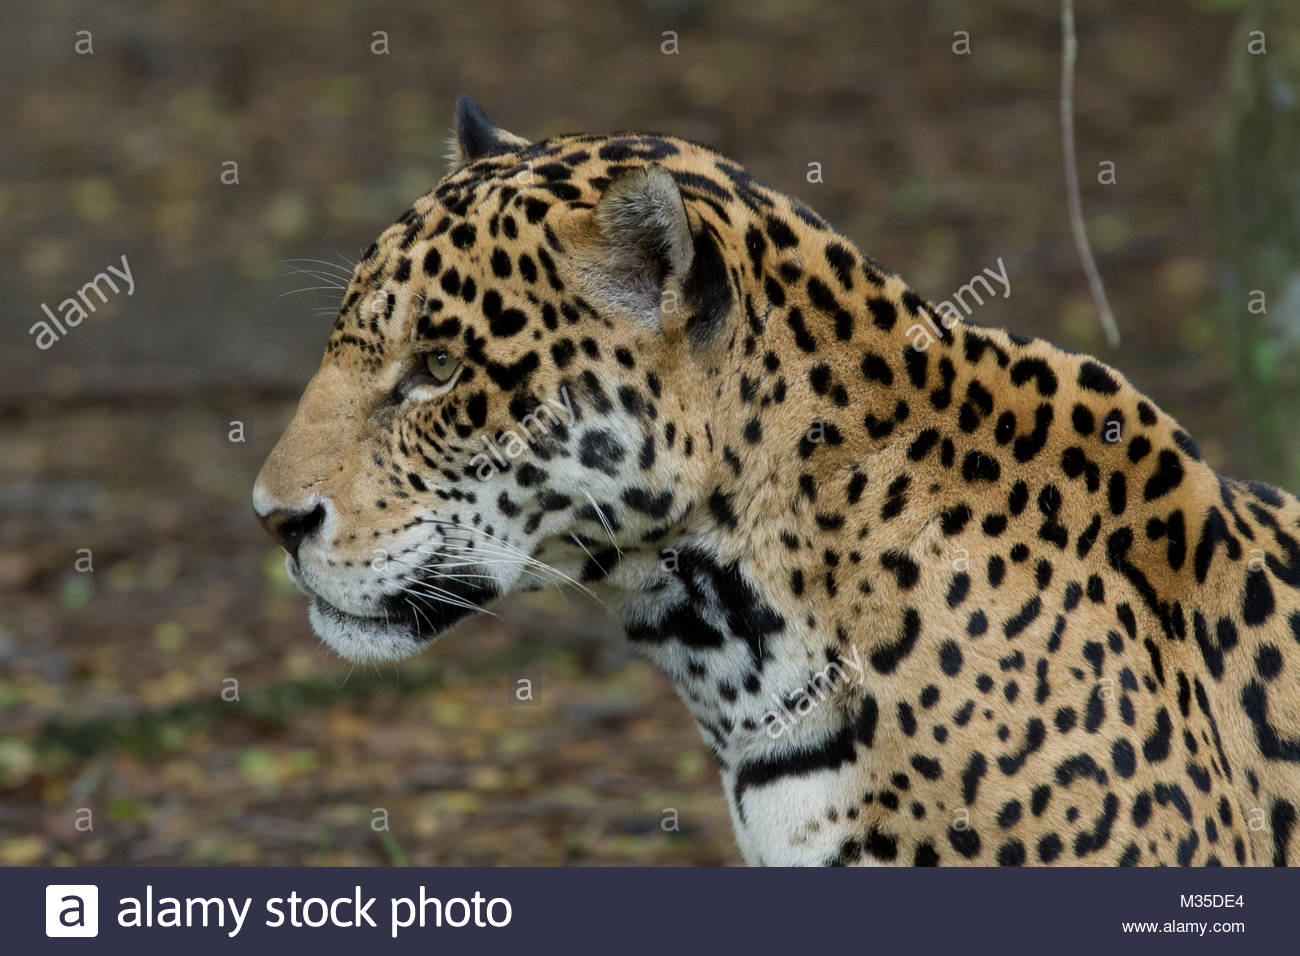 Leopard on the lookout - Stock Image